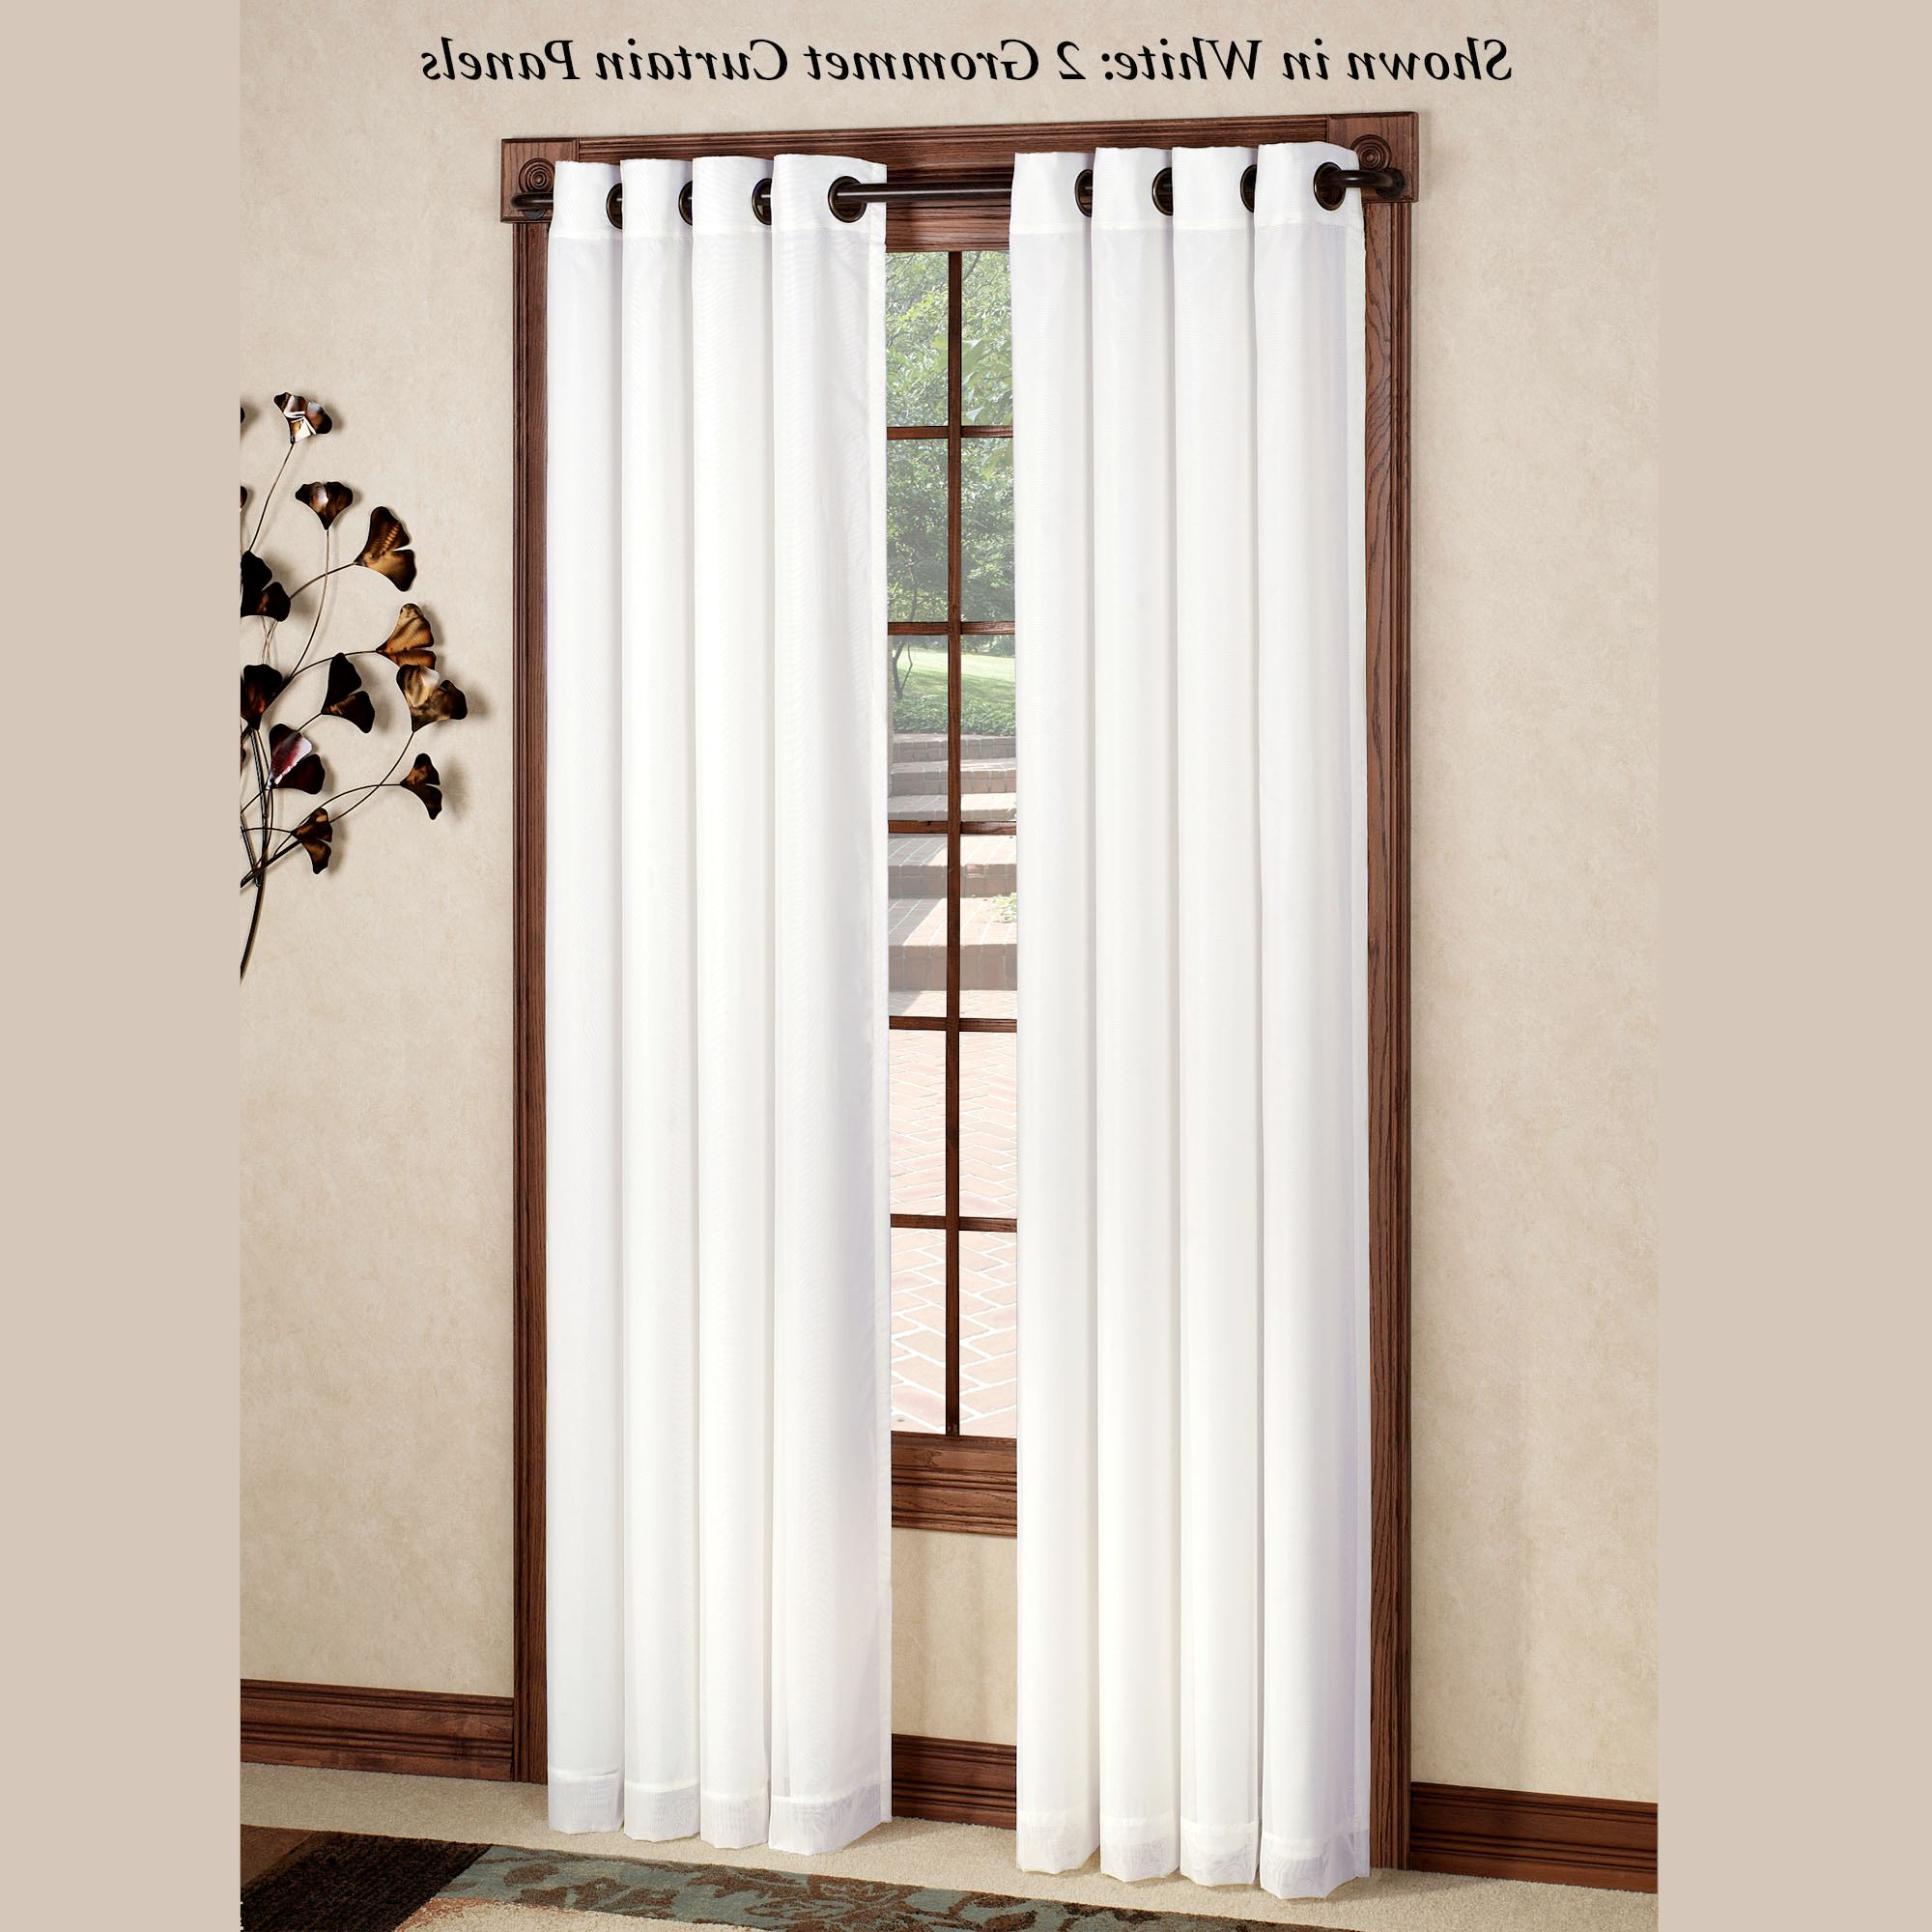 Fashionable Rhapsody Thermavoile(Tm) Grommet Curtain Panels Regarding Grommet Curtain Panels (Gallery 4 of 20)